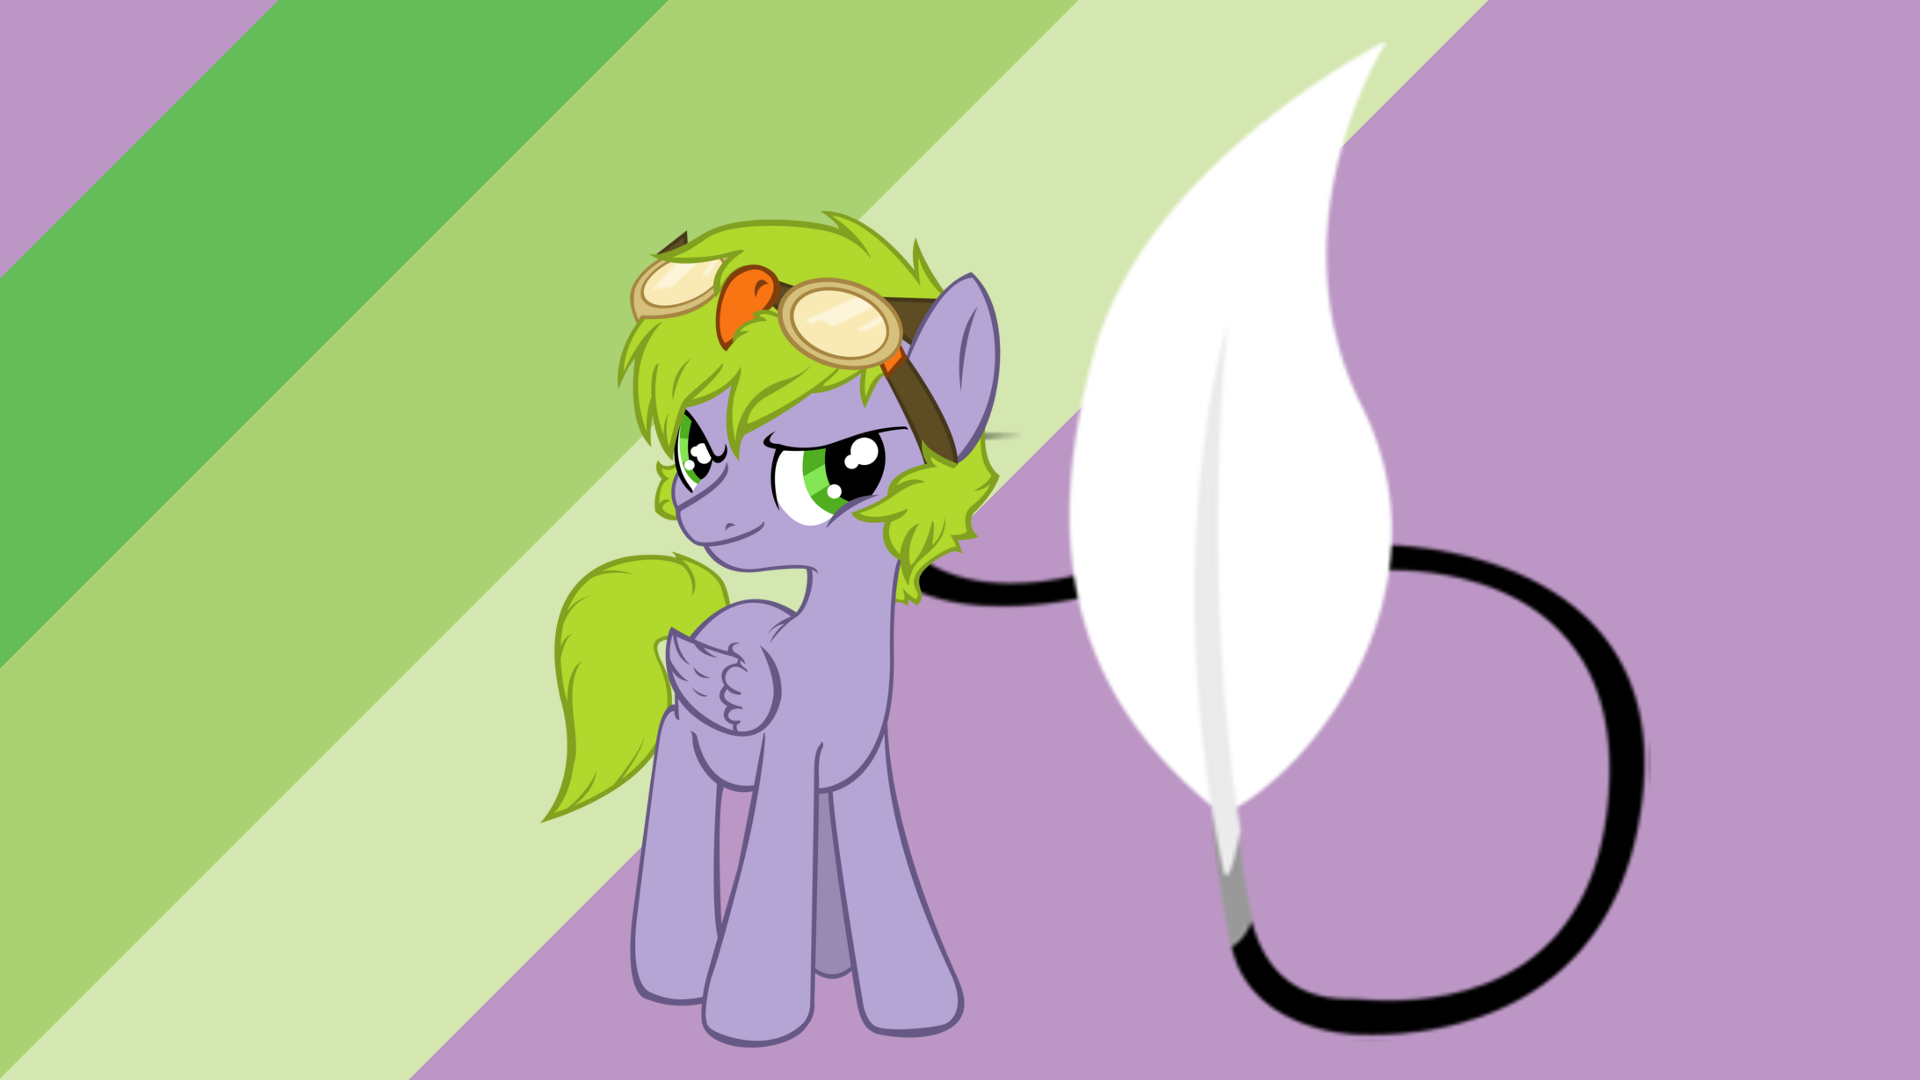 Minimalist Wallpaper 42.5: Spike -Pony- by A-Ponies-Love, Episkopi and Softfang